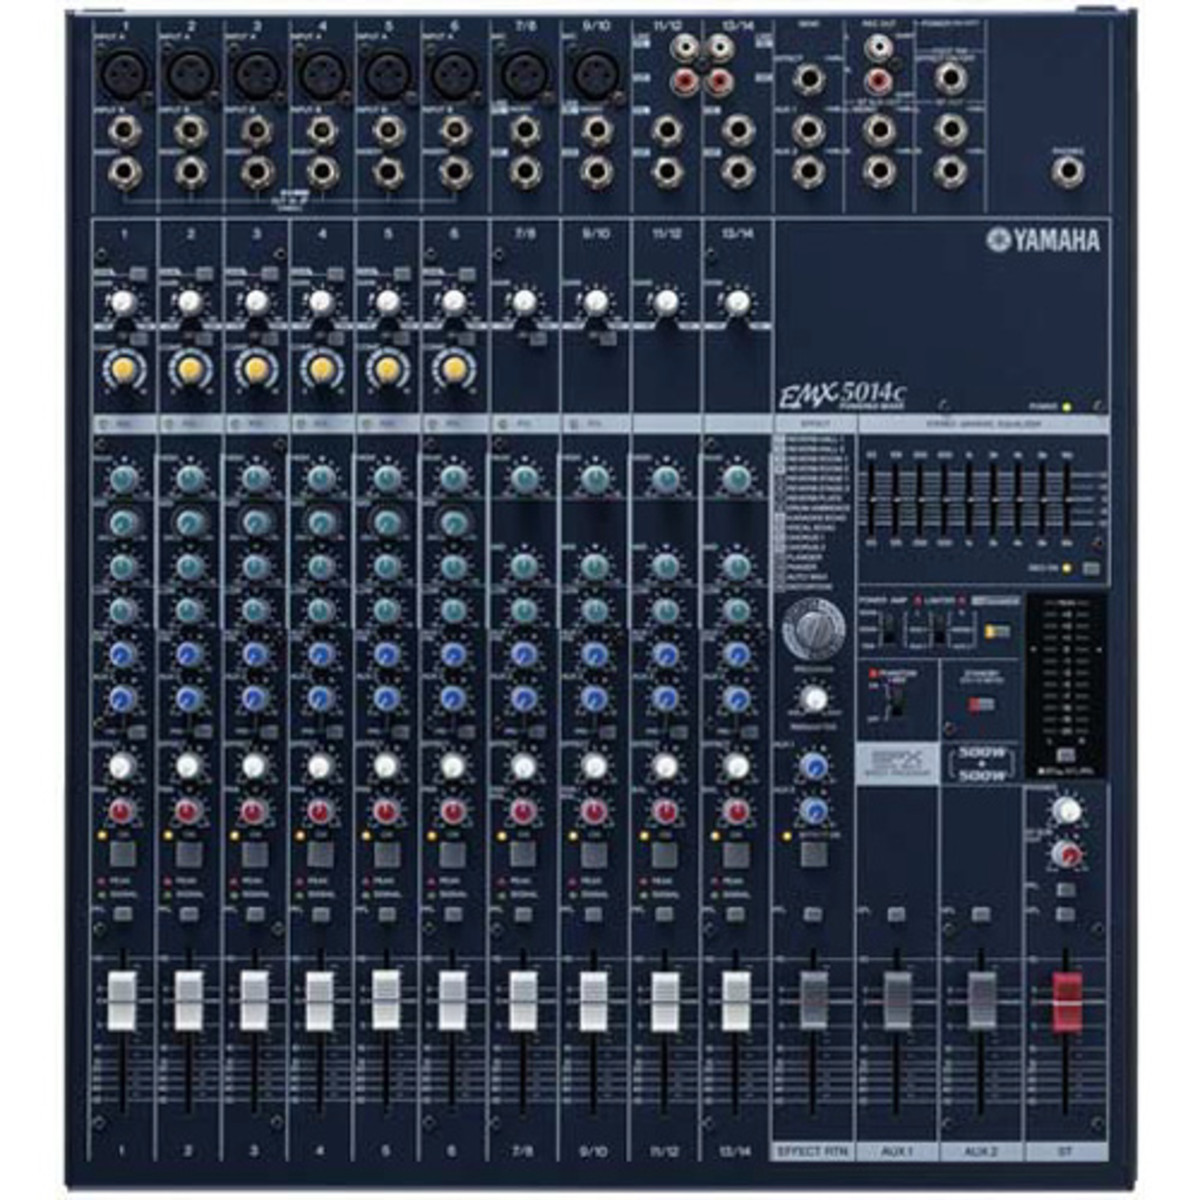 Yamaha EMX5014C Powered Mixer